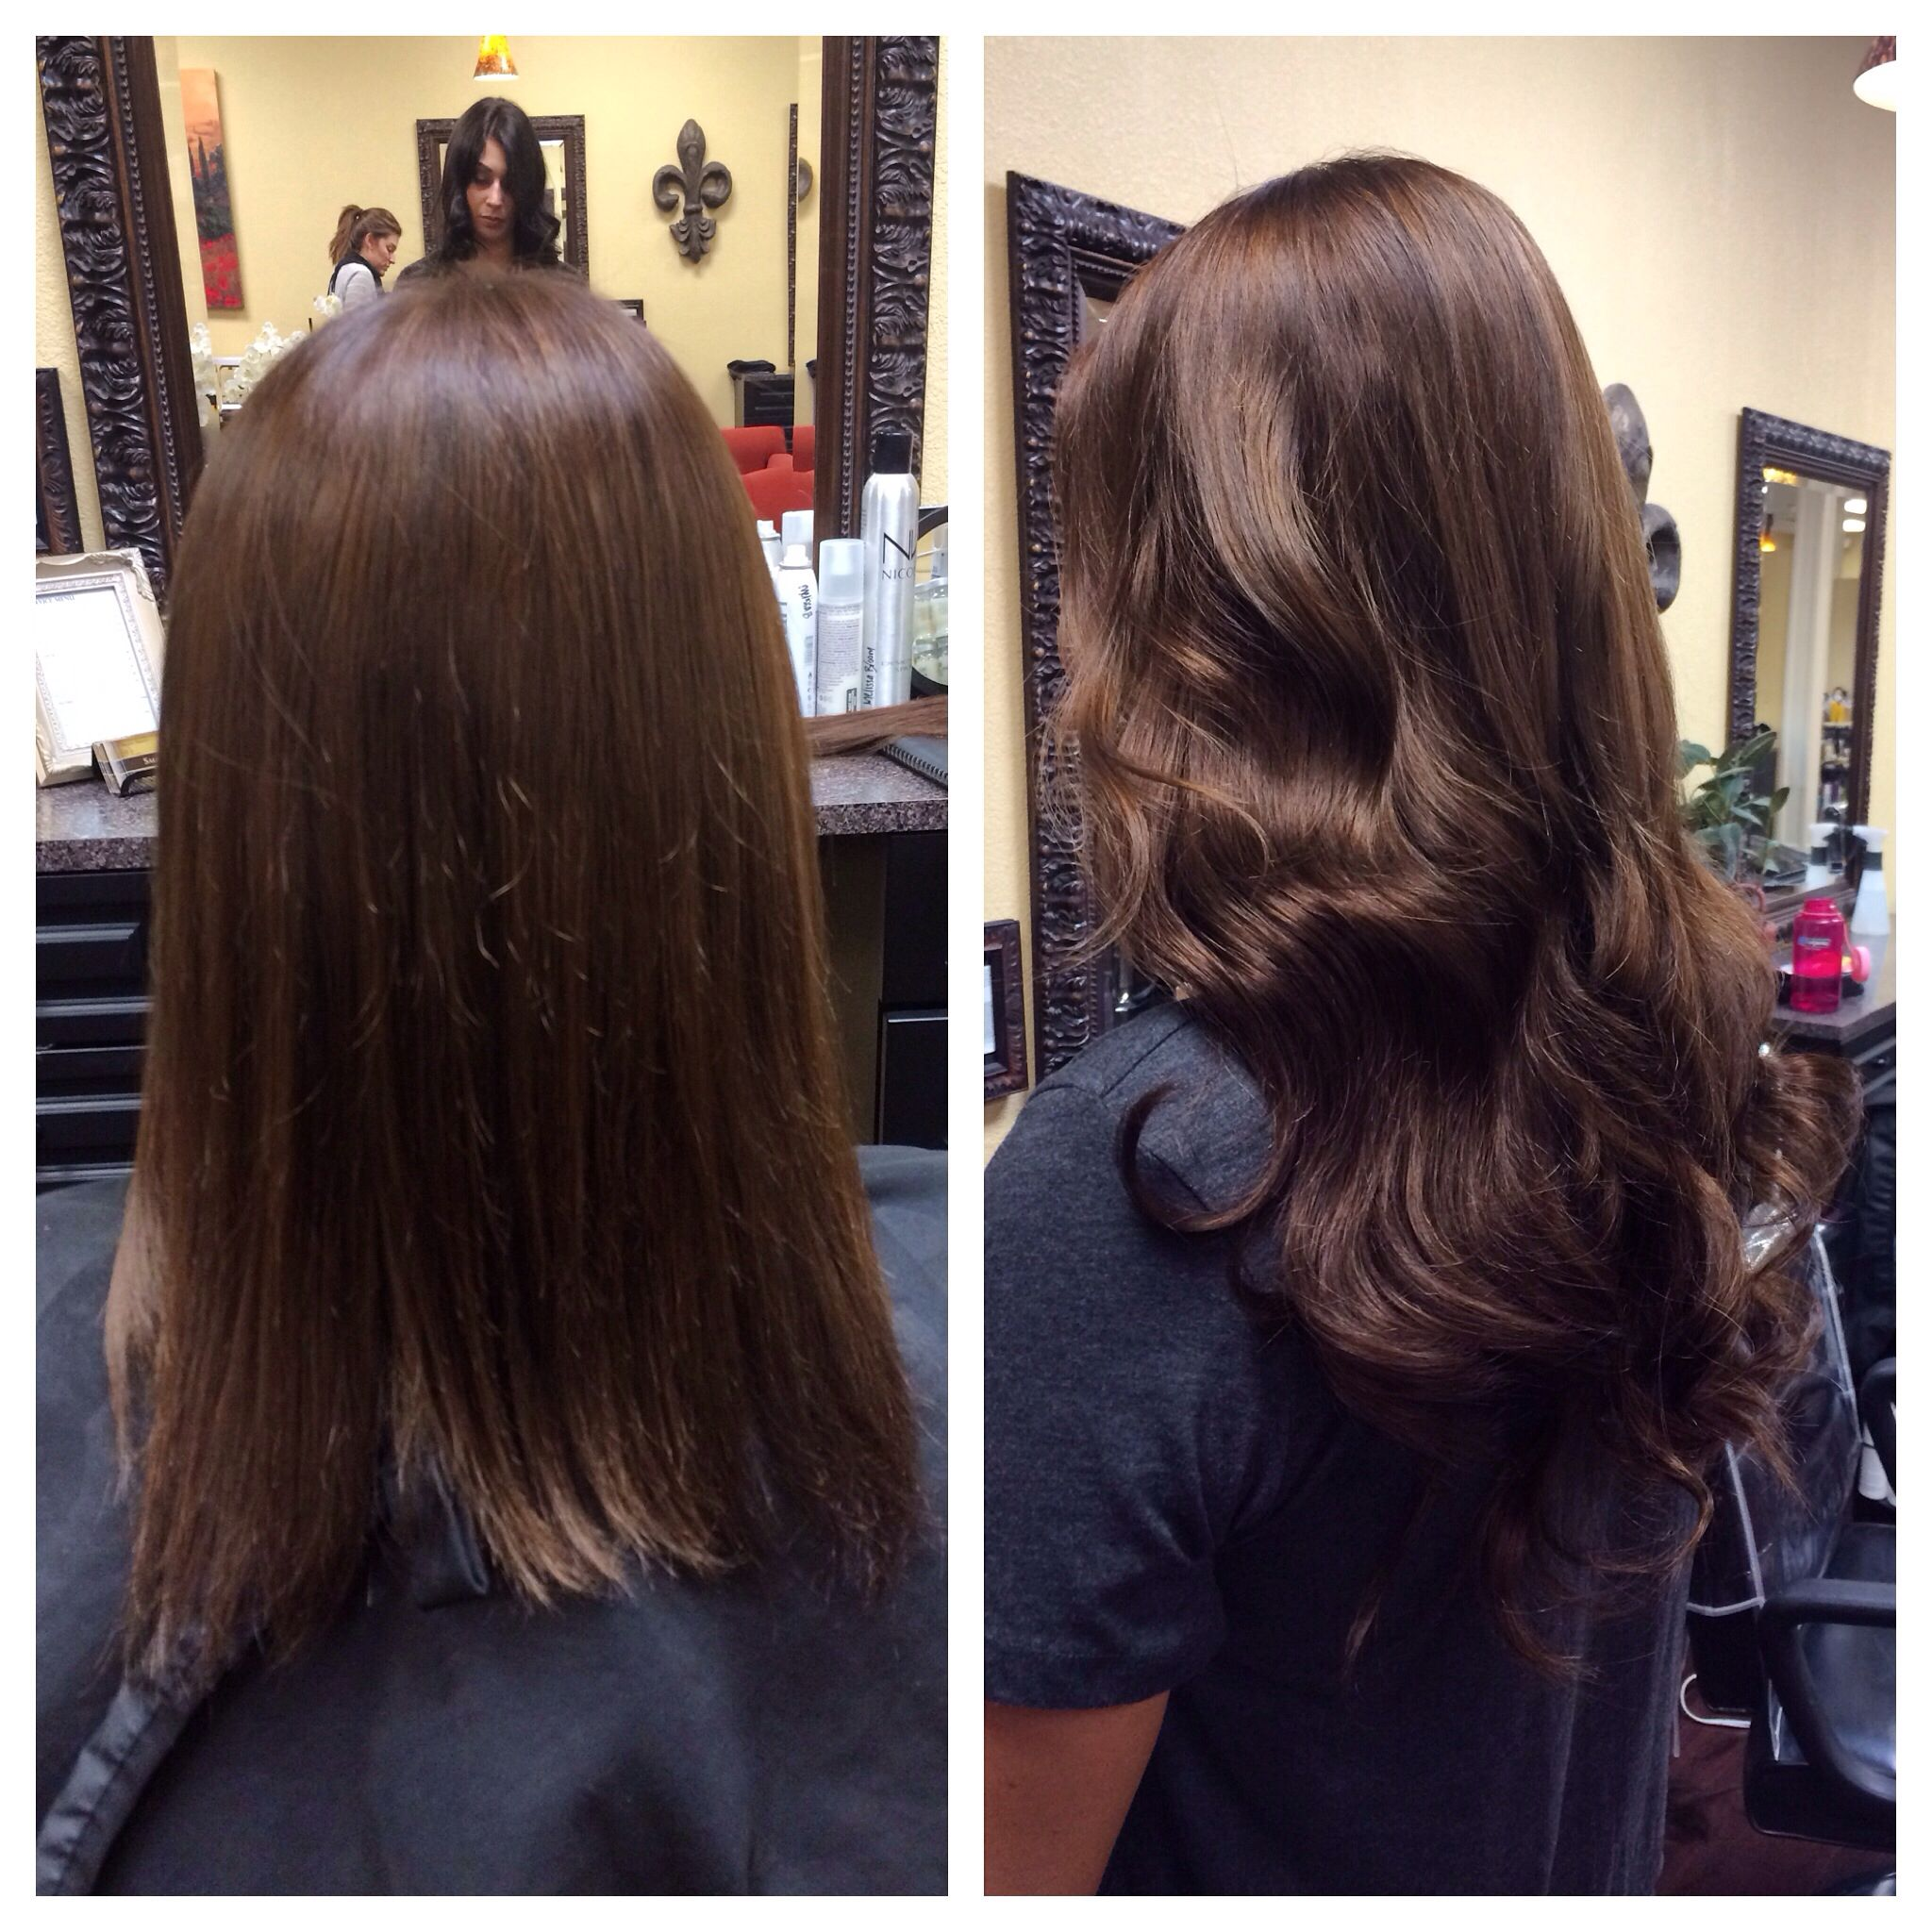 Before and after - tape in extensions. Melissa Broom at Salon Murcel. San Ramon, Ca.